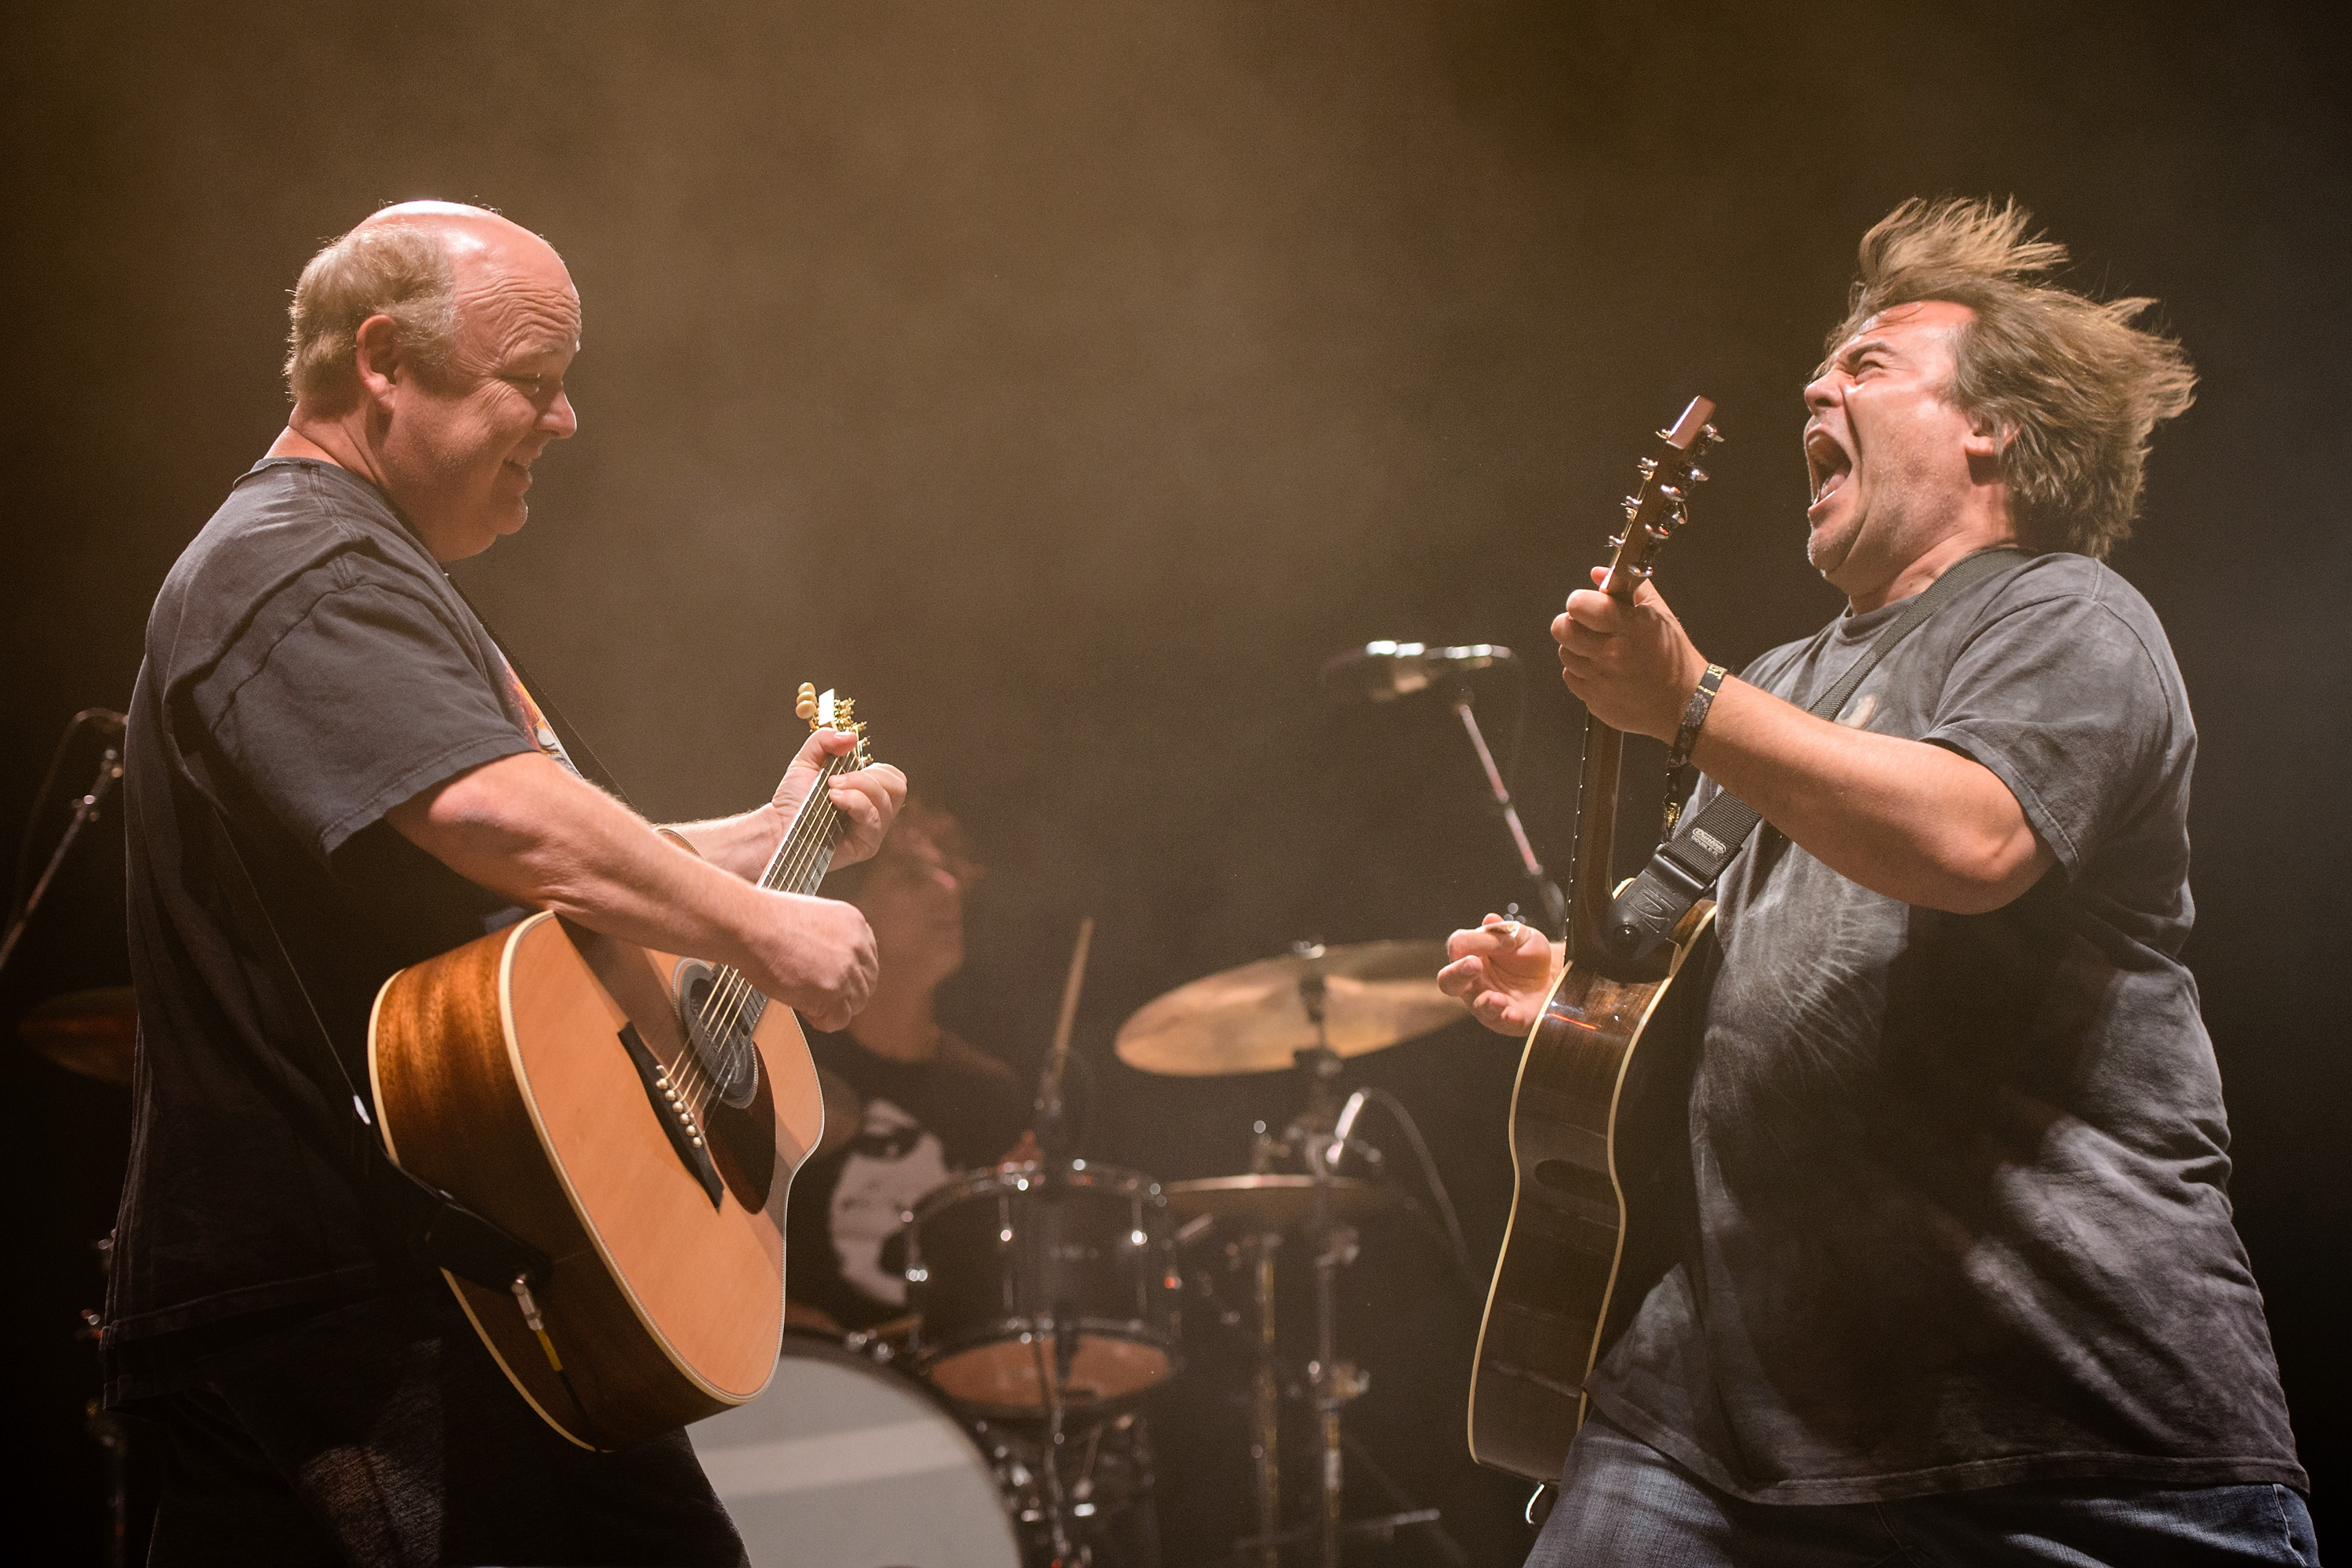 Tenacious D were not impressed with their Twitter account being hacked